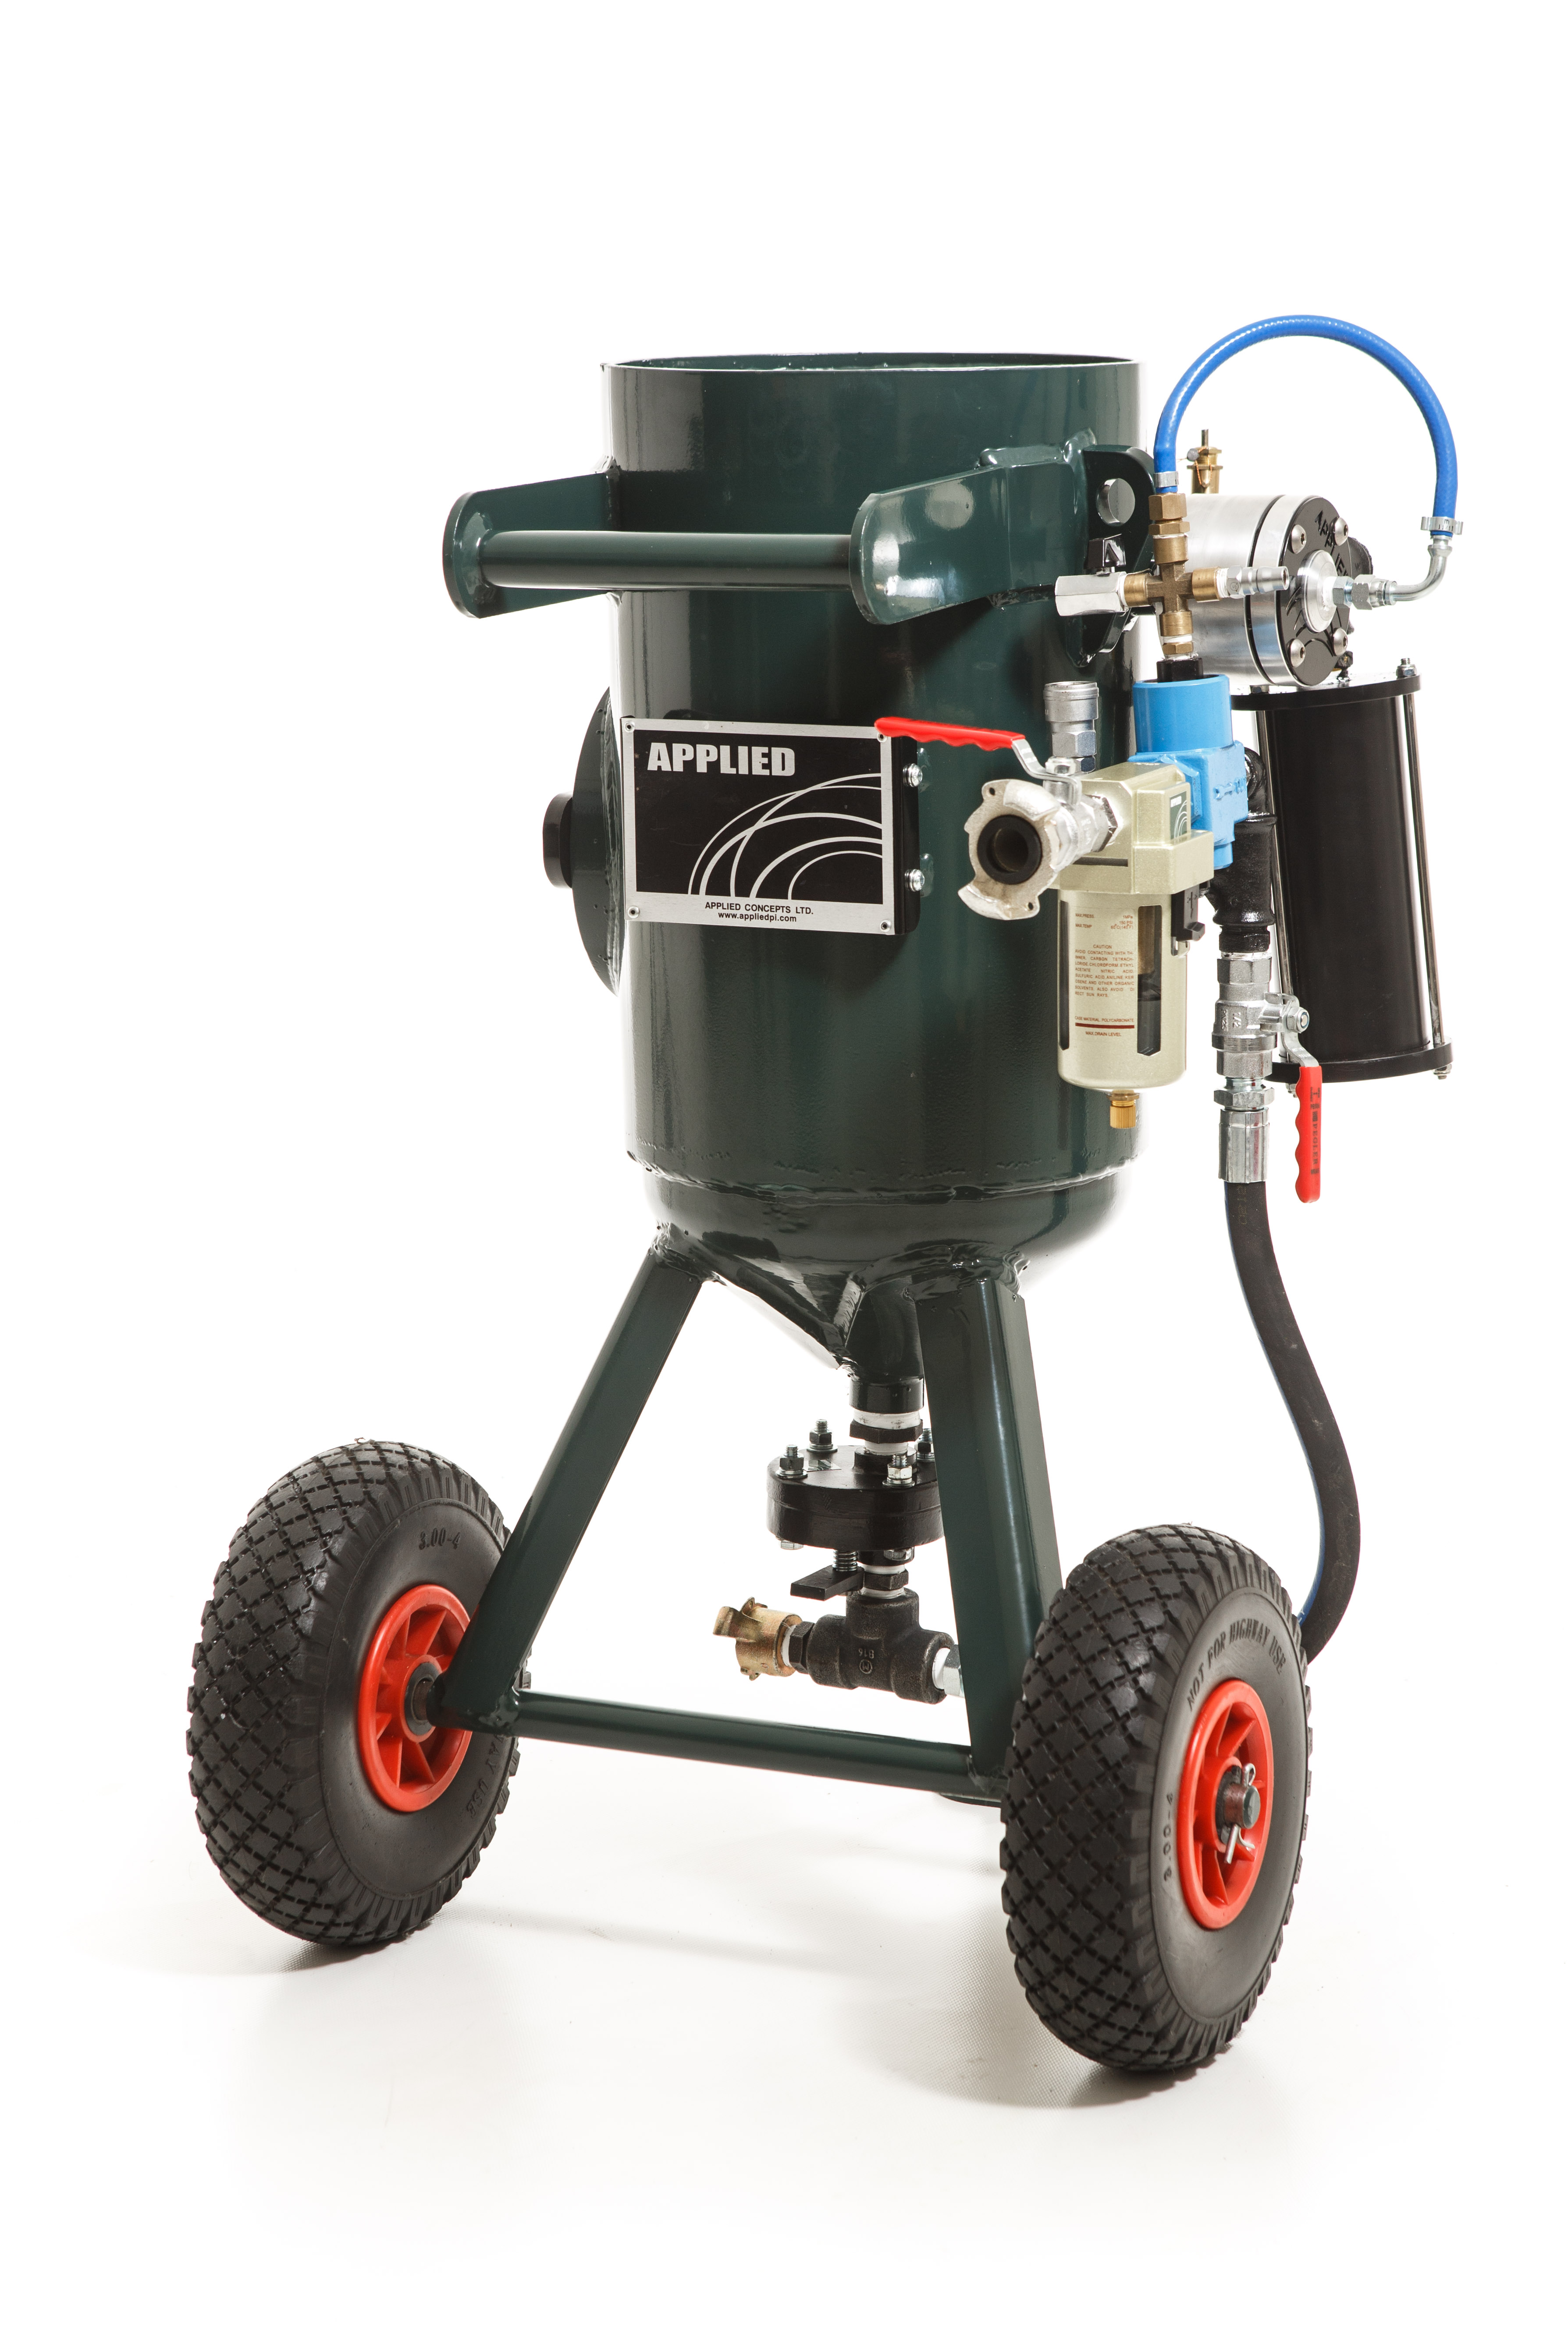 20 Litre Blast Machine | Applied Concepts LTD